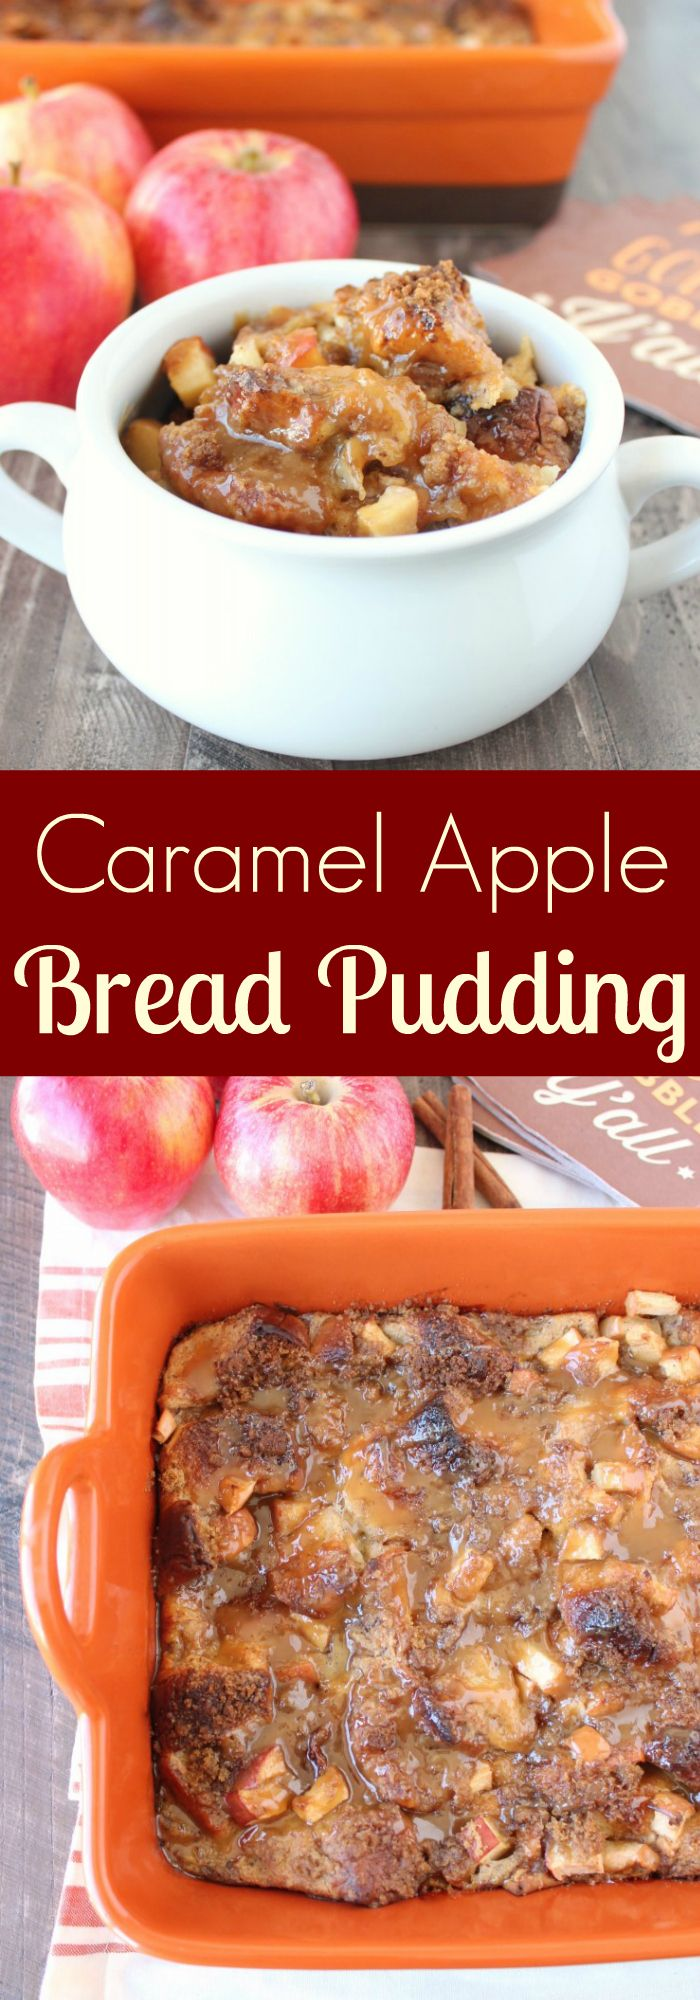 The #WorldMarket Rectangular Potluck Baker is perfect for baking up this scrumptious & simple Caramel Apple Bread Pudding recipe! #WorldMarketTribe